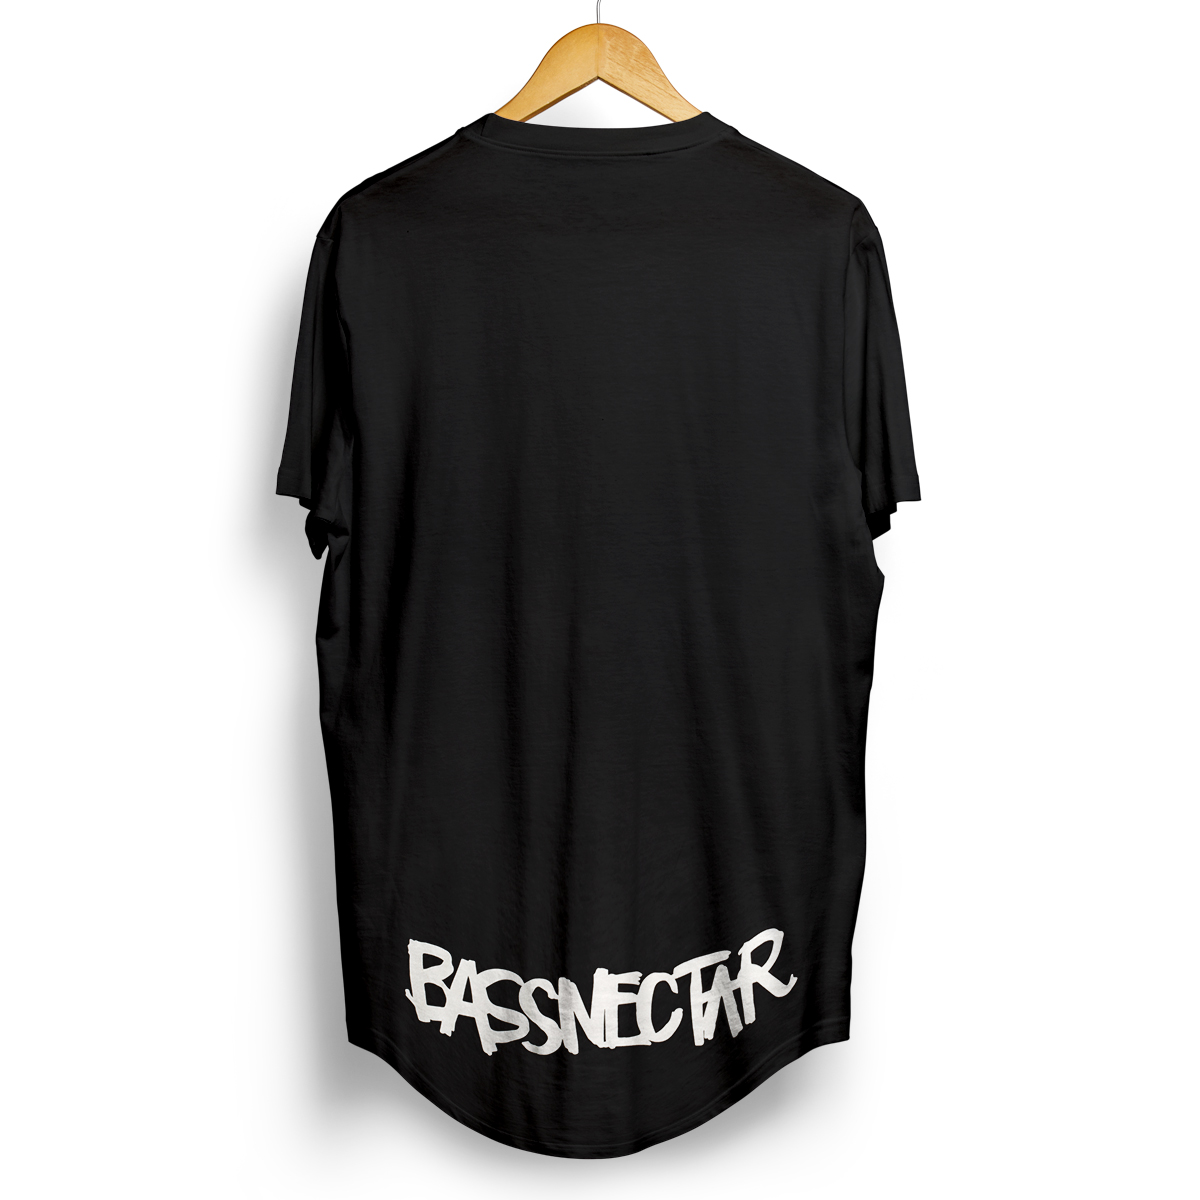 Bass Deer Black Long T Shirt Shop The Bassnectar